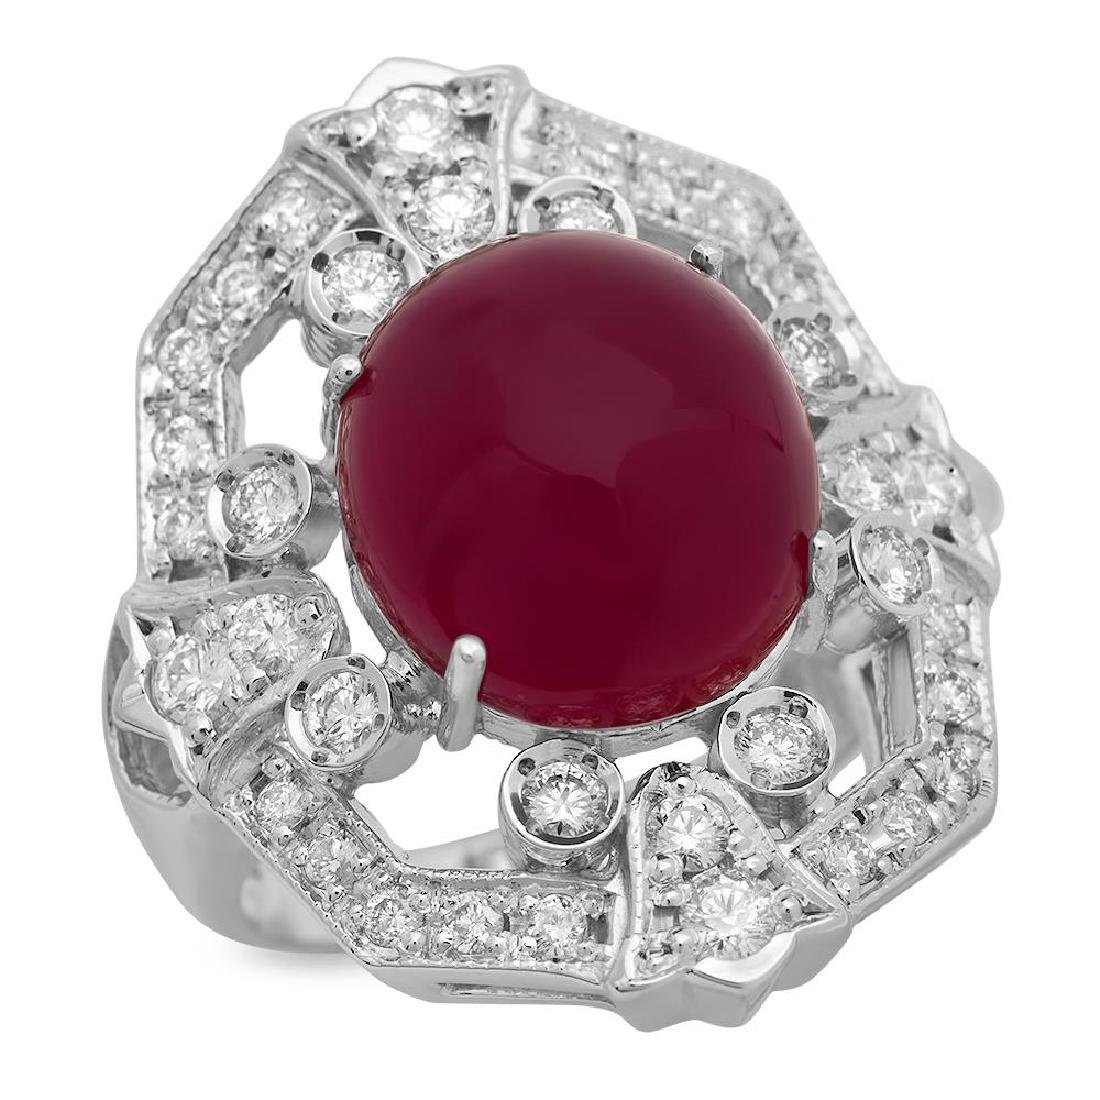 14K Gold 14.84ct Ruby 1.12ct Diamond Ring